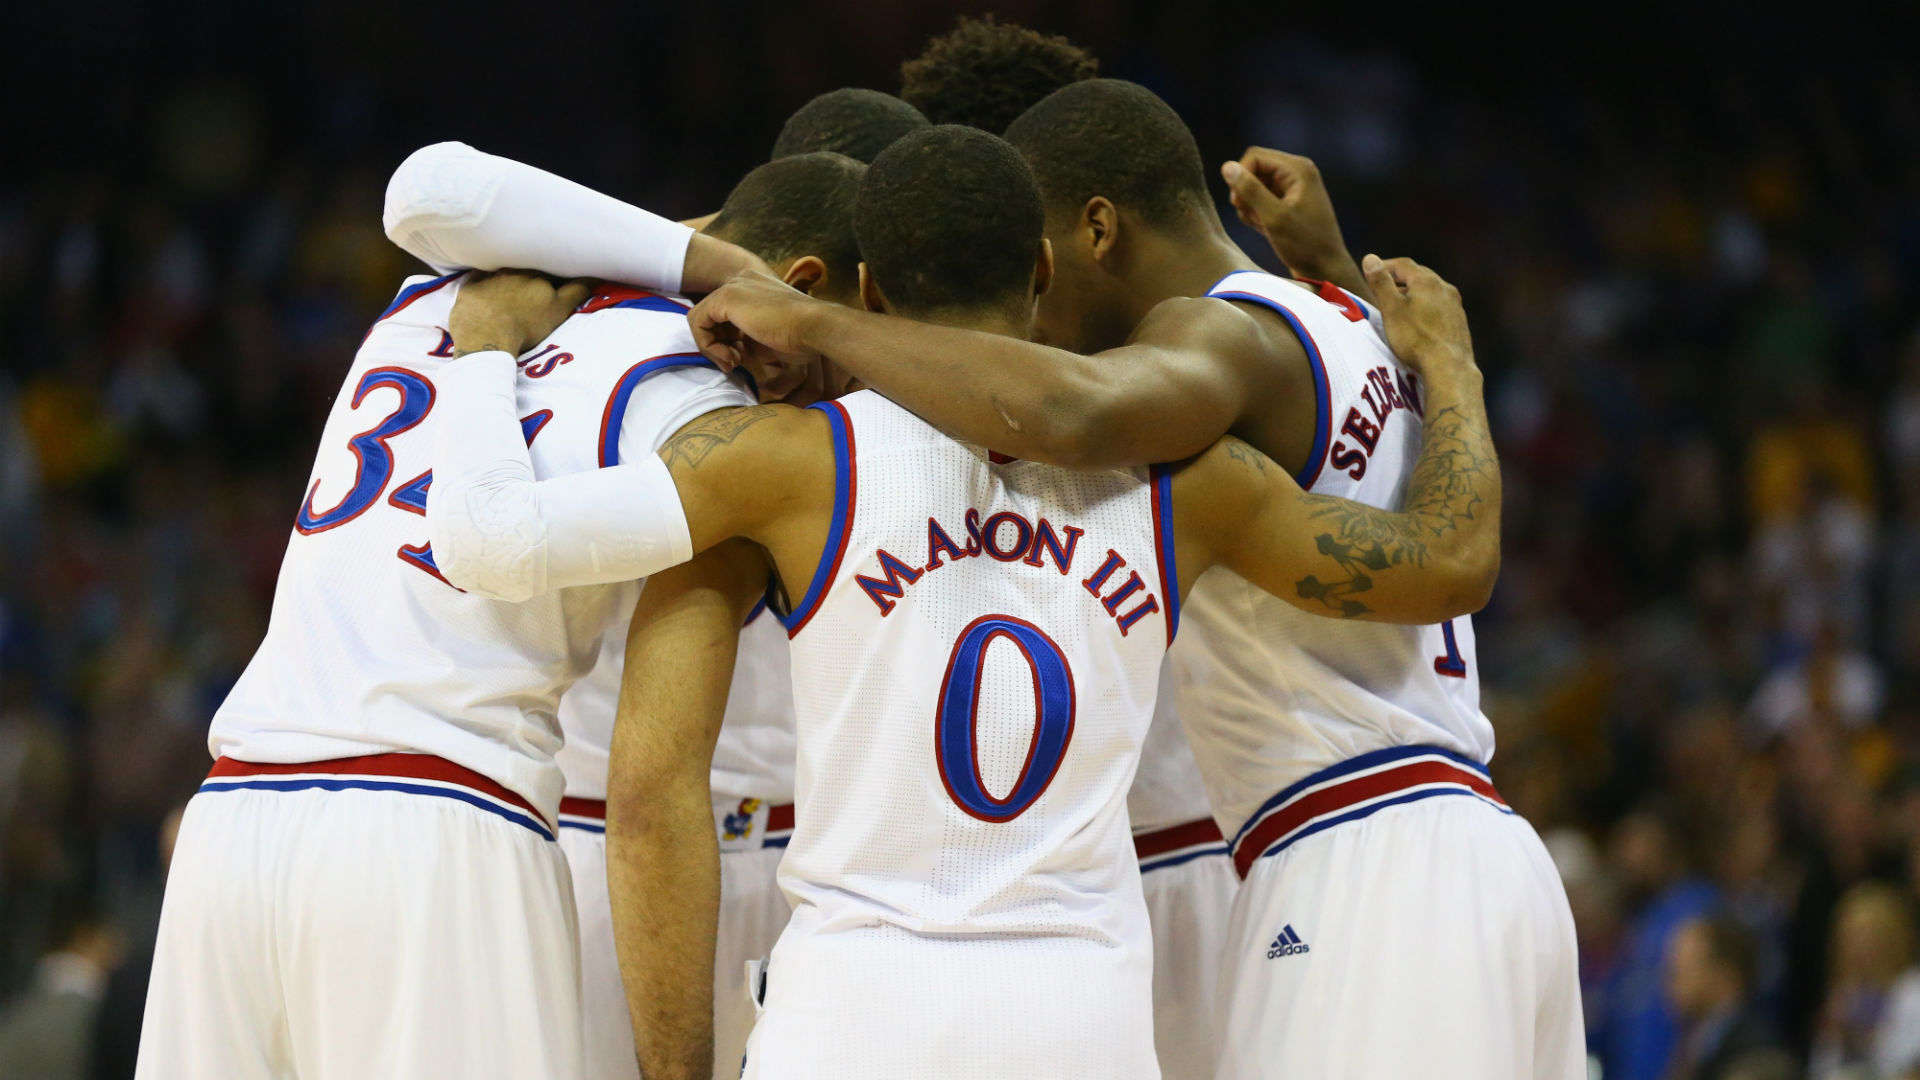 Kansas conquered the world but knows NCAA title is a tougher assignment